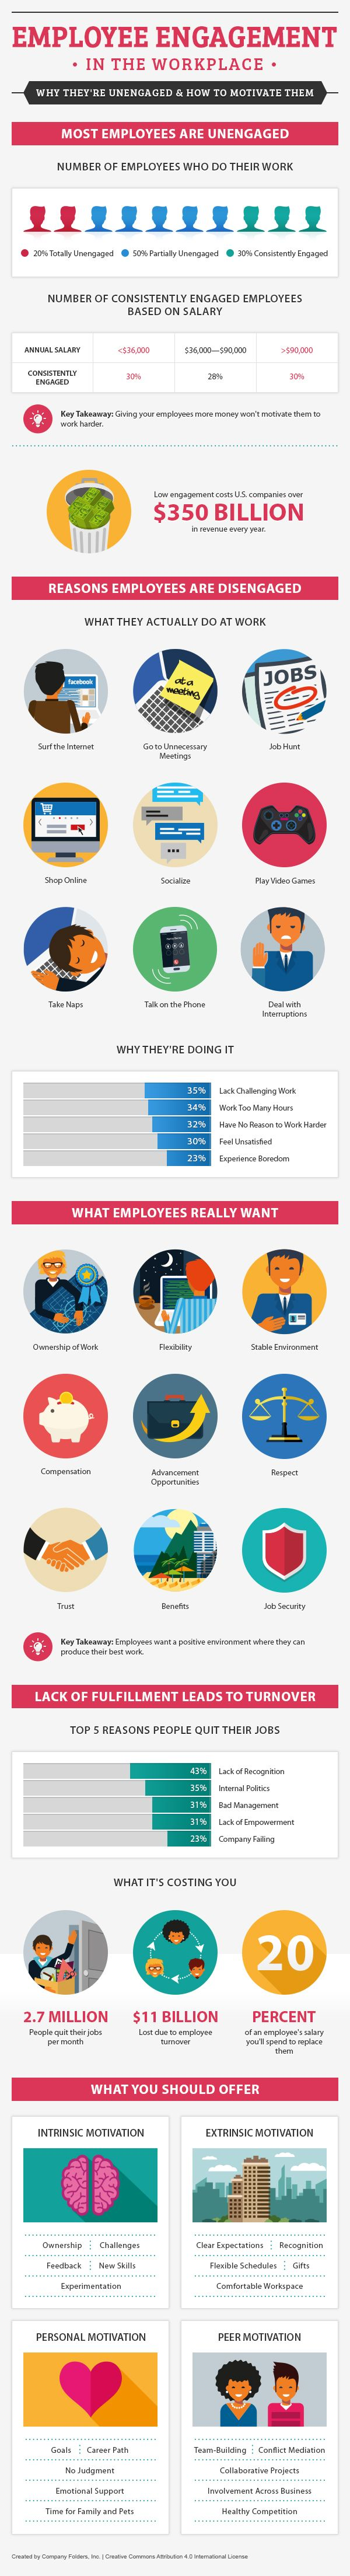 Employee Engagement in the Workplace: Why They're Unengaged & How to Motivate Them